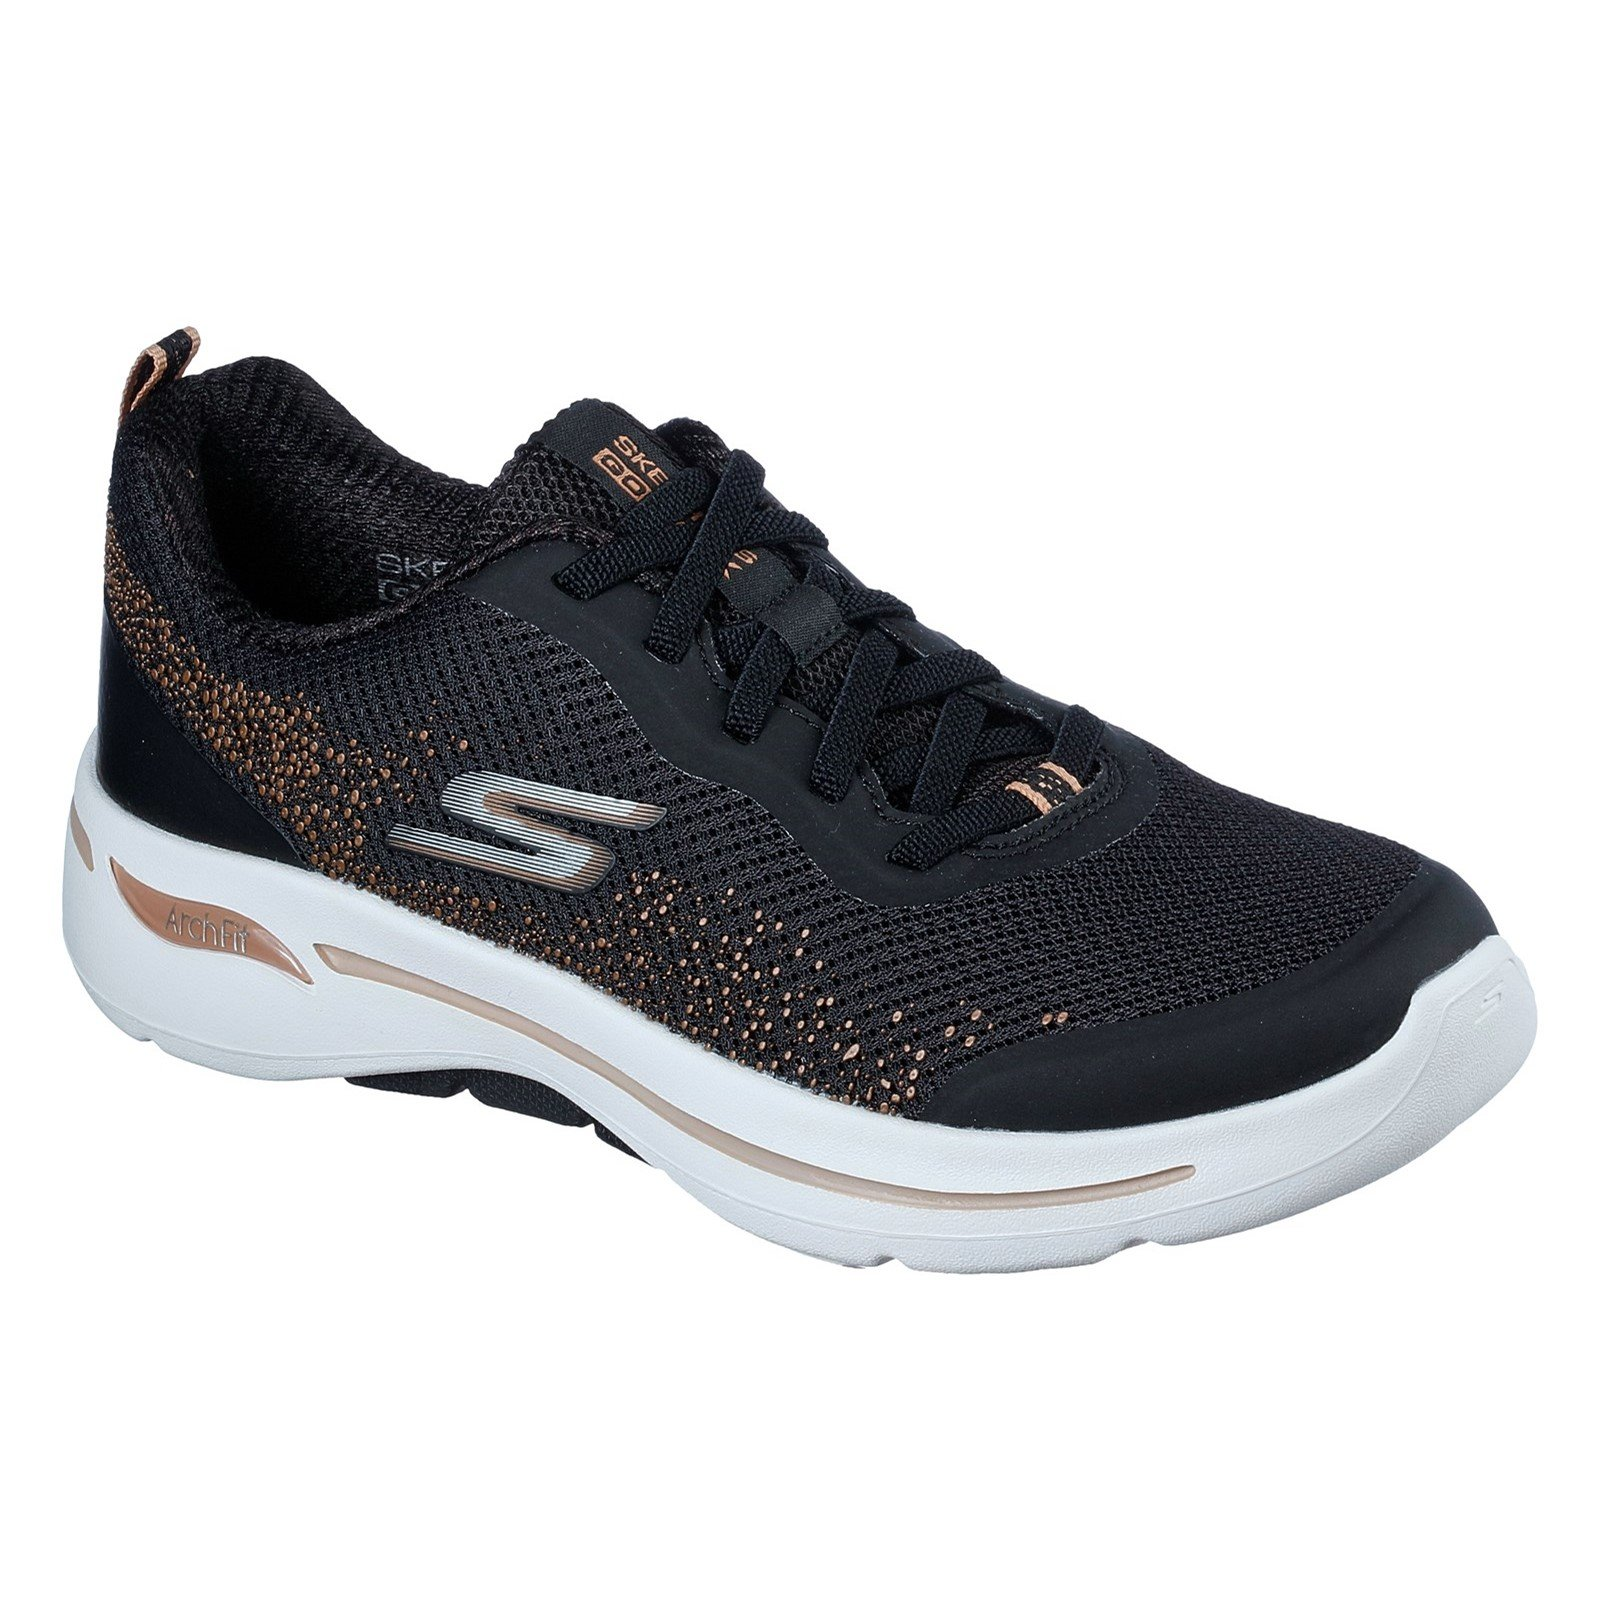 Skechers Women's Go Walk Arch Fit Flying Stars Trainer Various Colours 32841 - Black/Gold 7